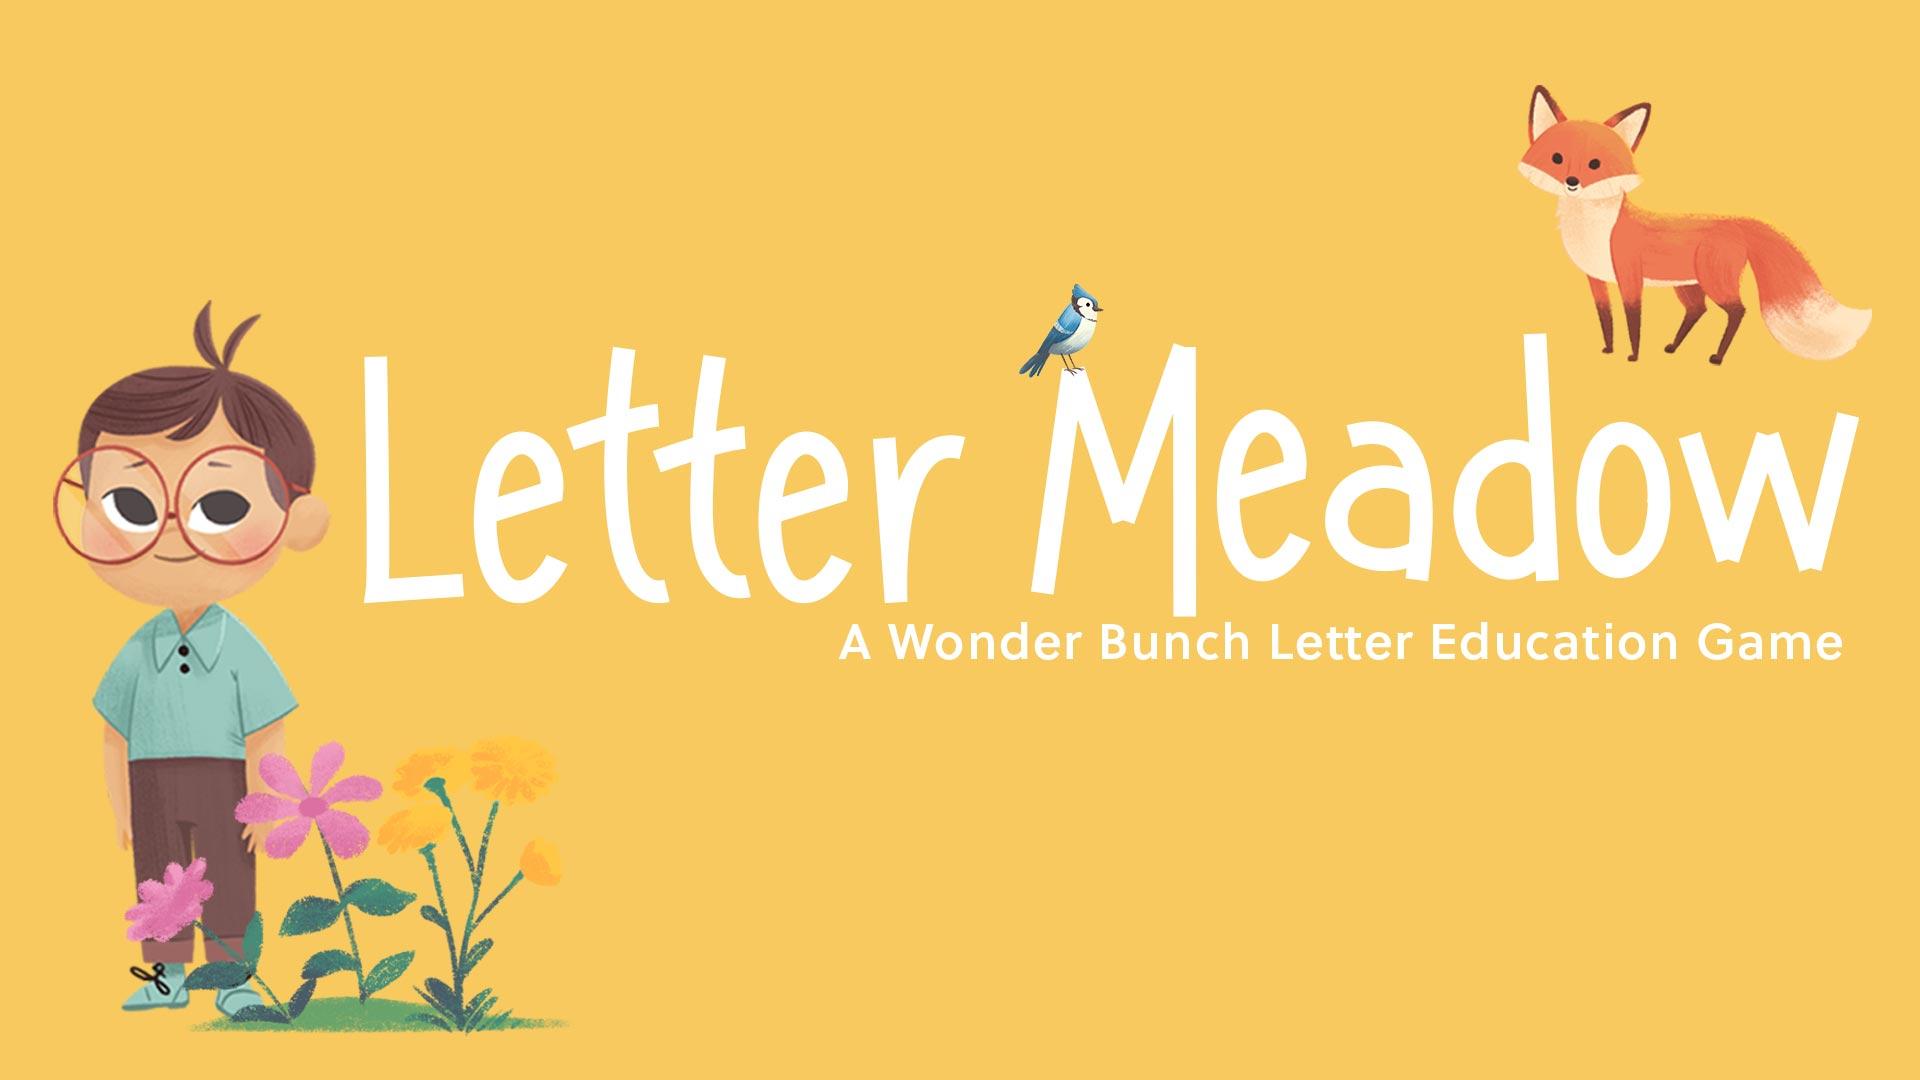 Letter Meadow - A Wonder Bunch Letter Education Game